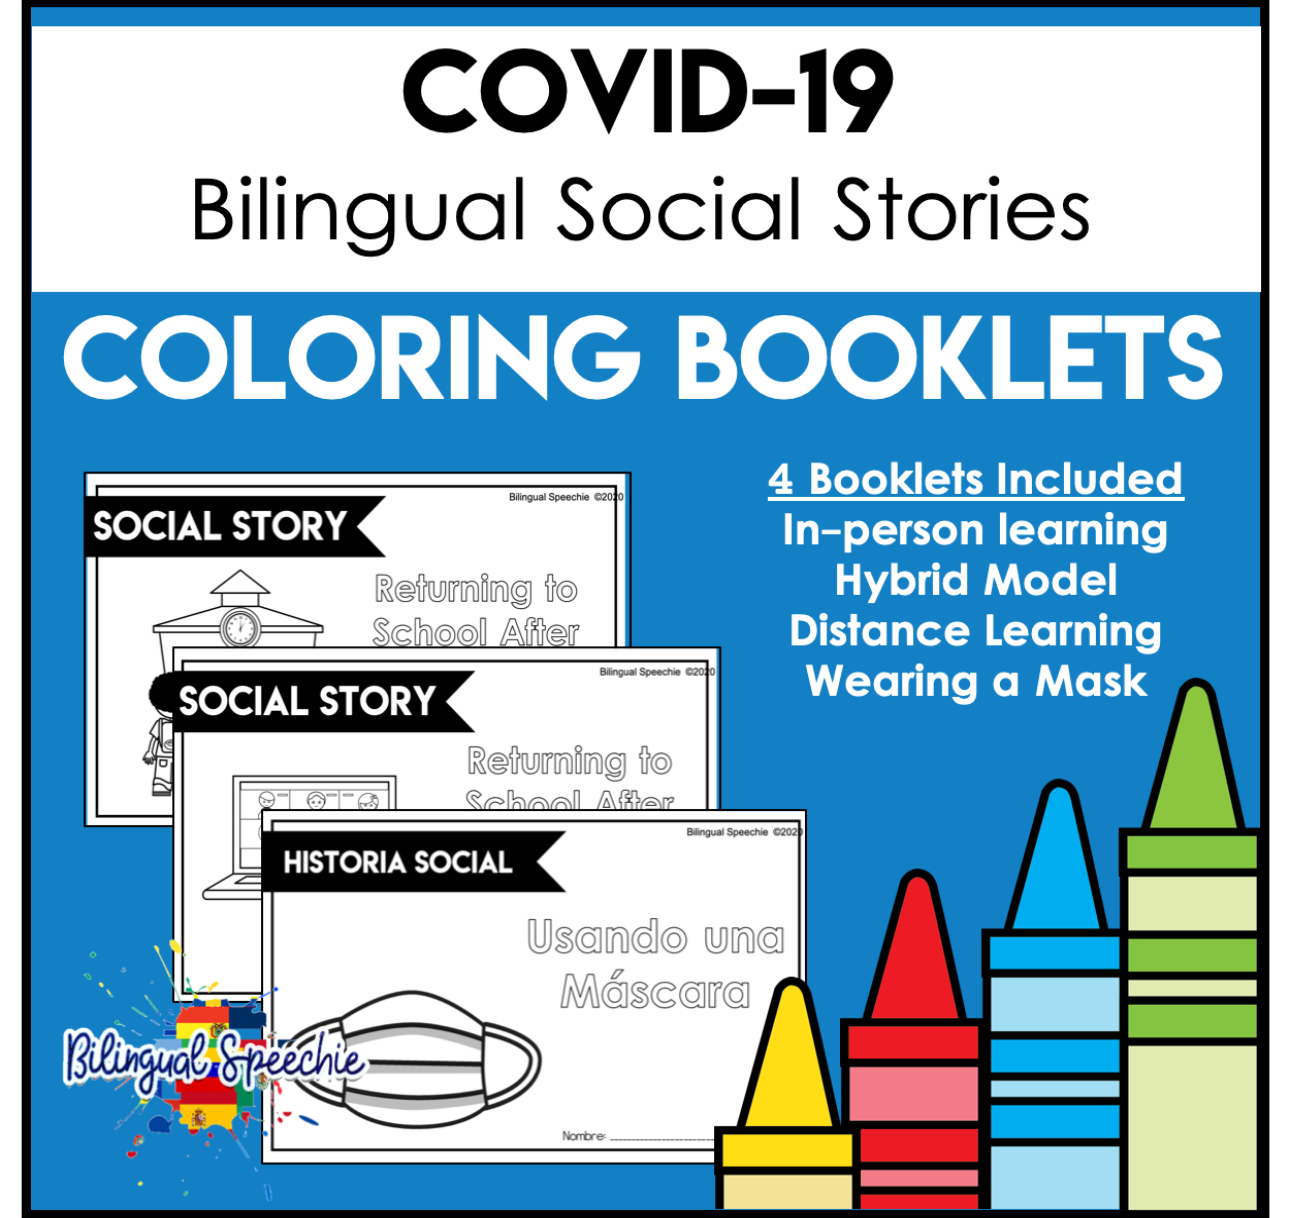 COVID-19 Bilingual Social Stories | Coloring Booklets